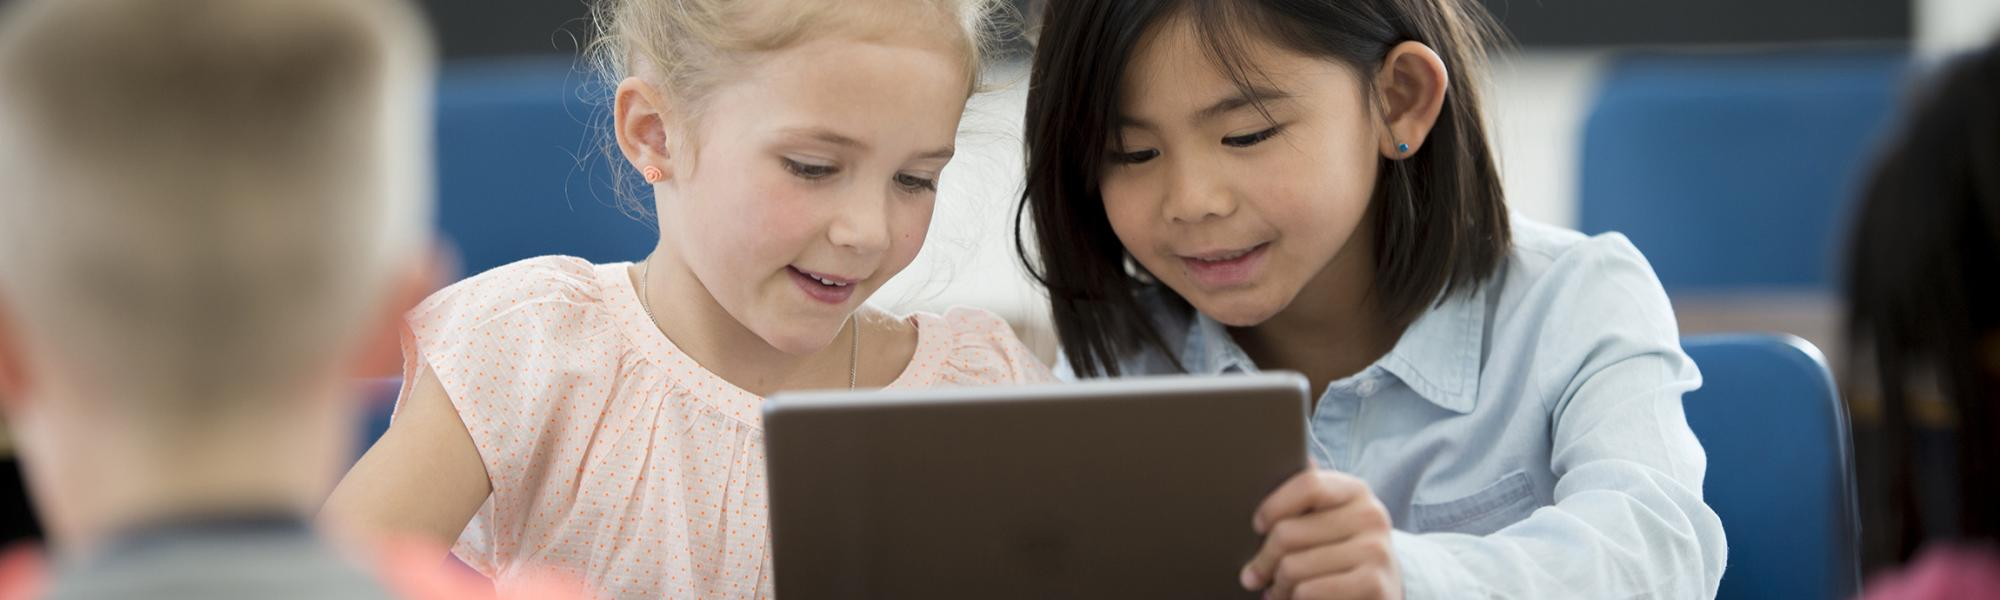 Children learning on tablet